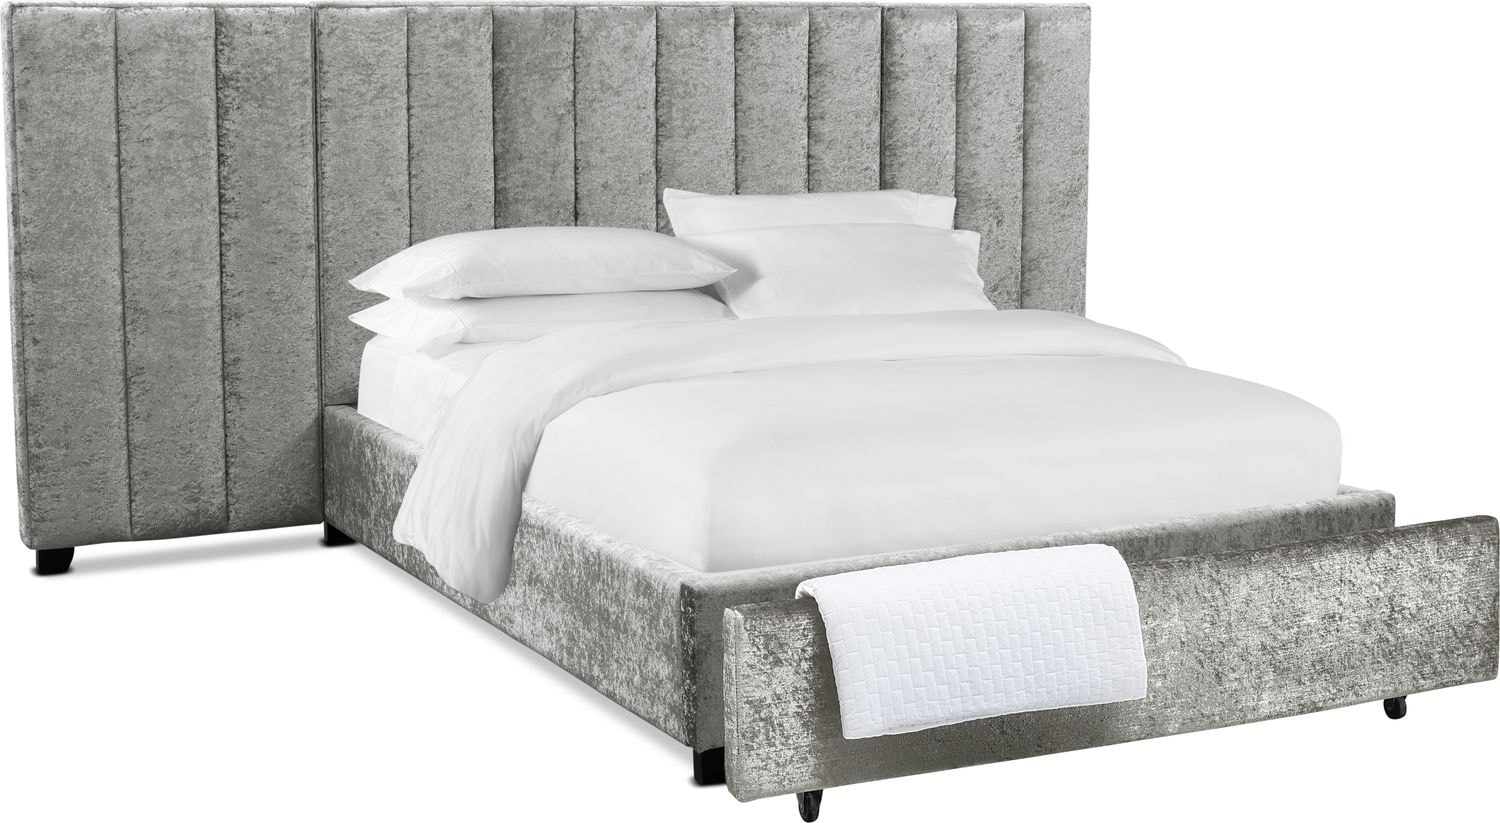 Bedroom Furniture - Kiera Upholstered Channel Wall Storage Bed